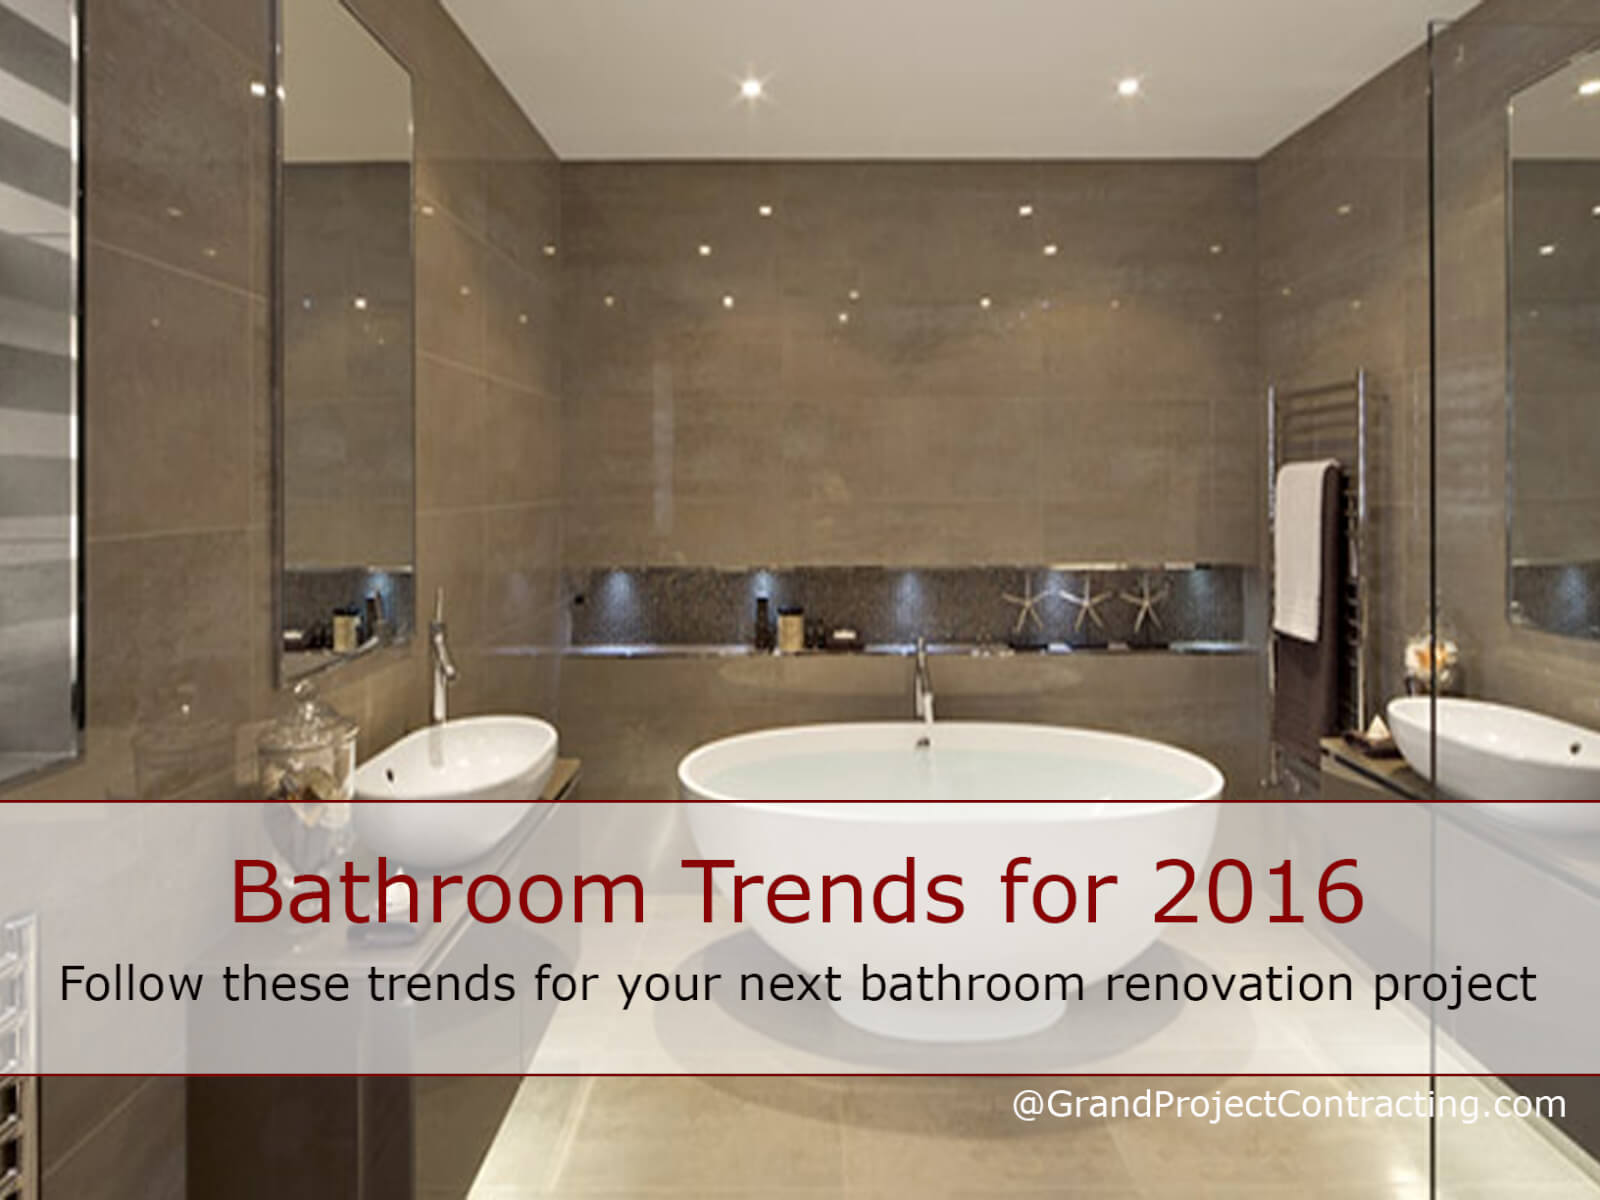 Bathroom trends for 2016 bathroom renovation contractor for Bathroom styles 2016